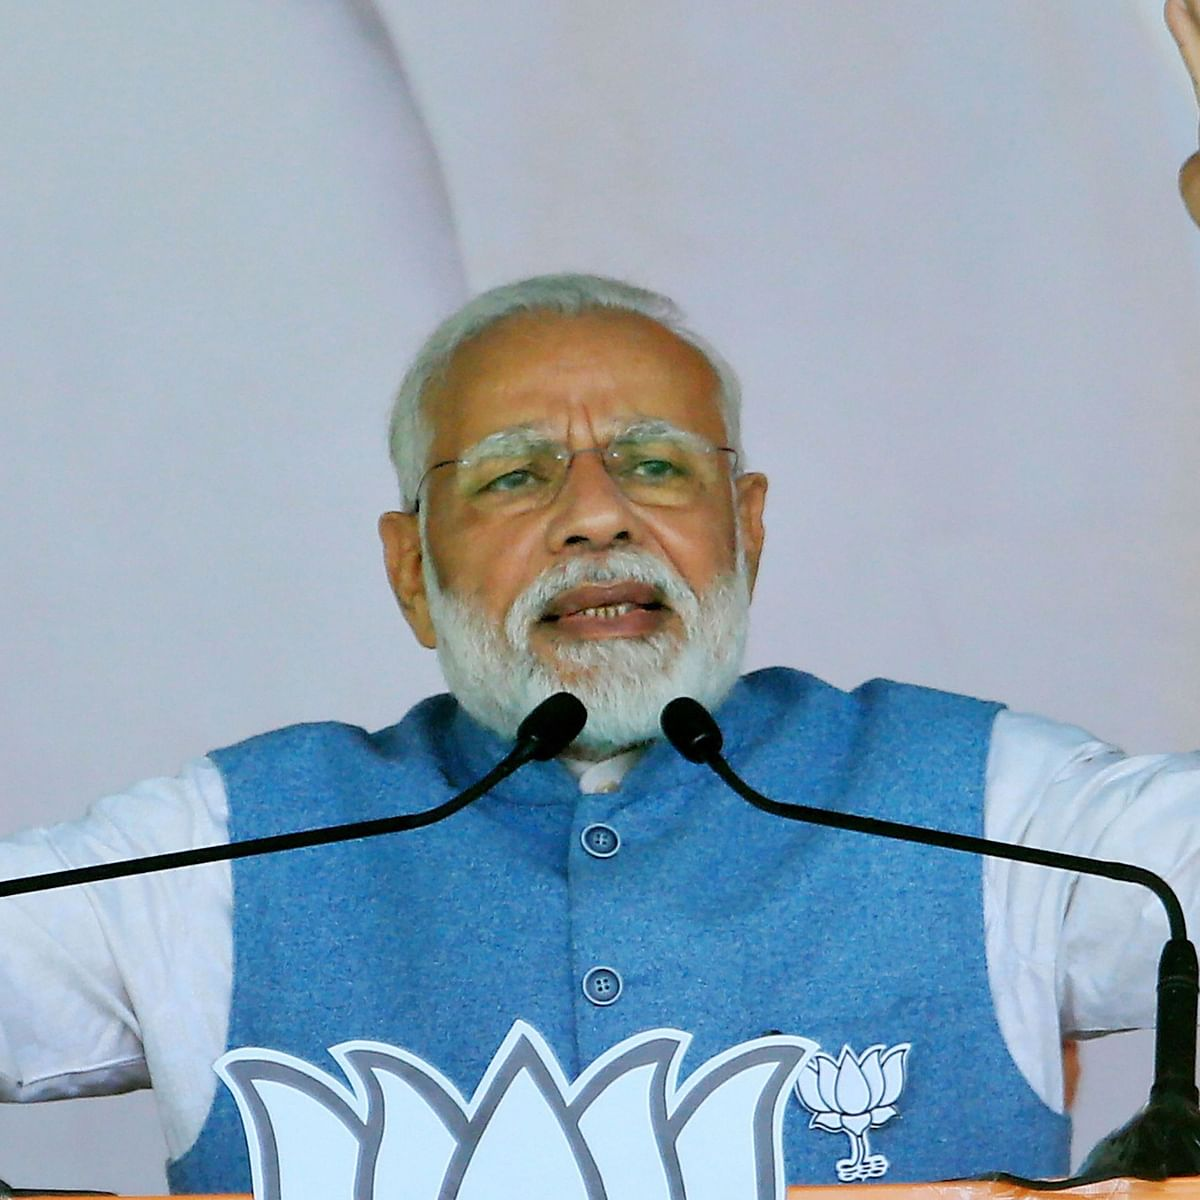 PM Modi has decided on 'tithi' for war with Pakistan, China: UP BJP chief's comments stir controversy